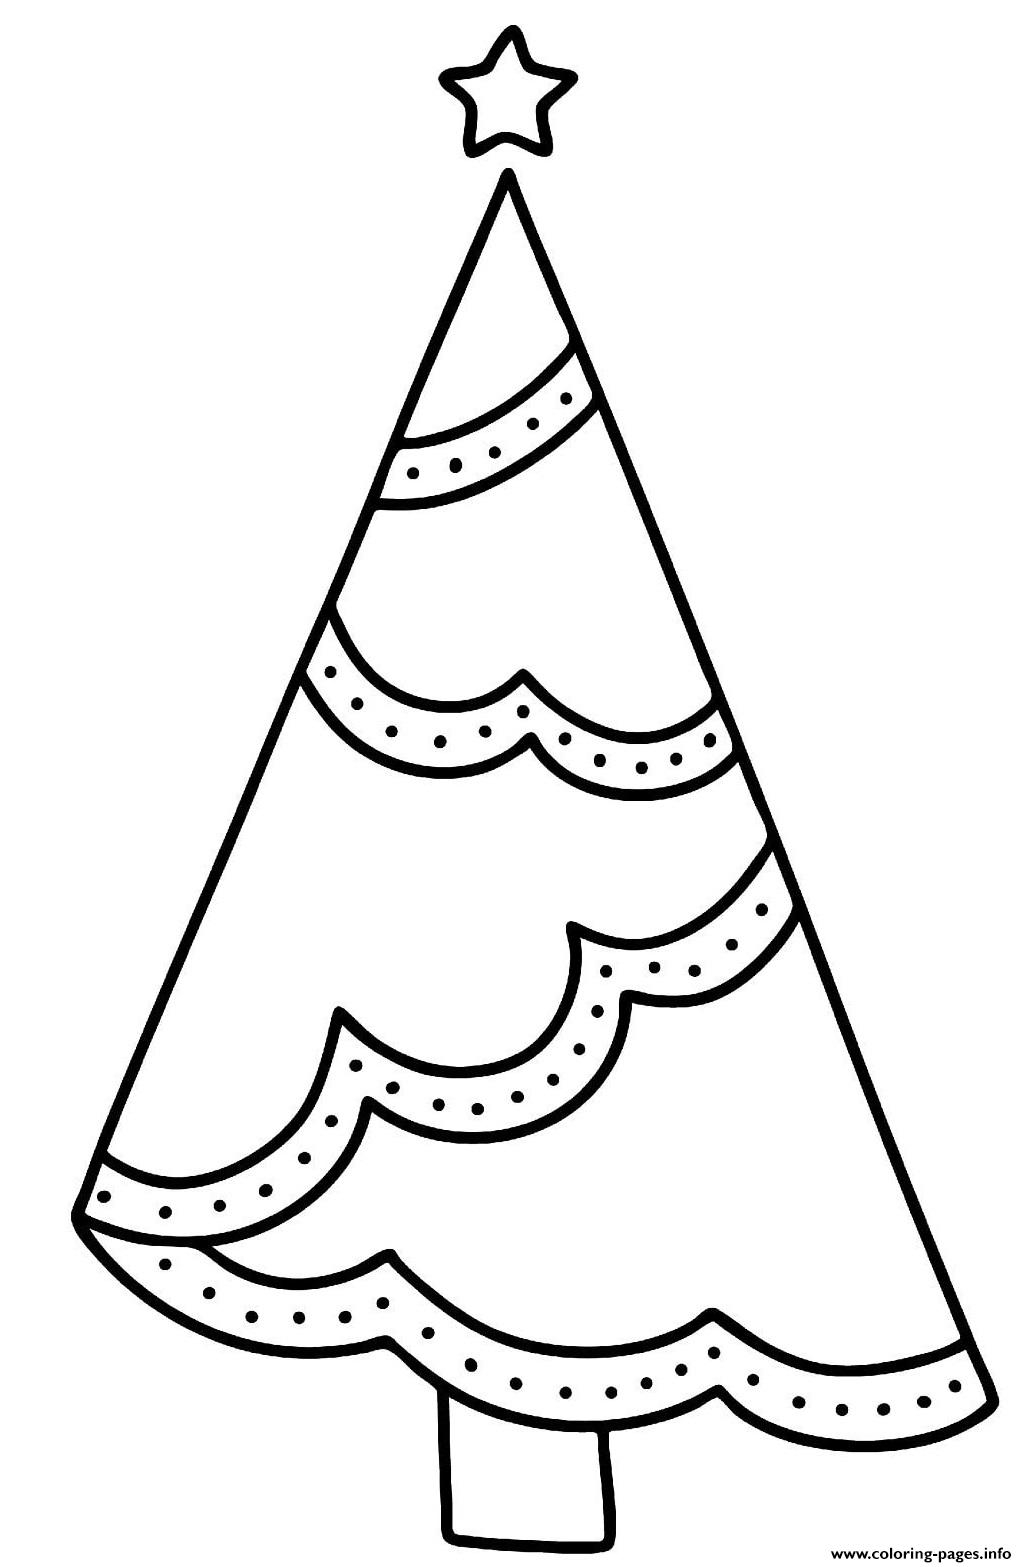 Simple Xmas Tree Design With Easy Decorations To Color coloring pages